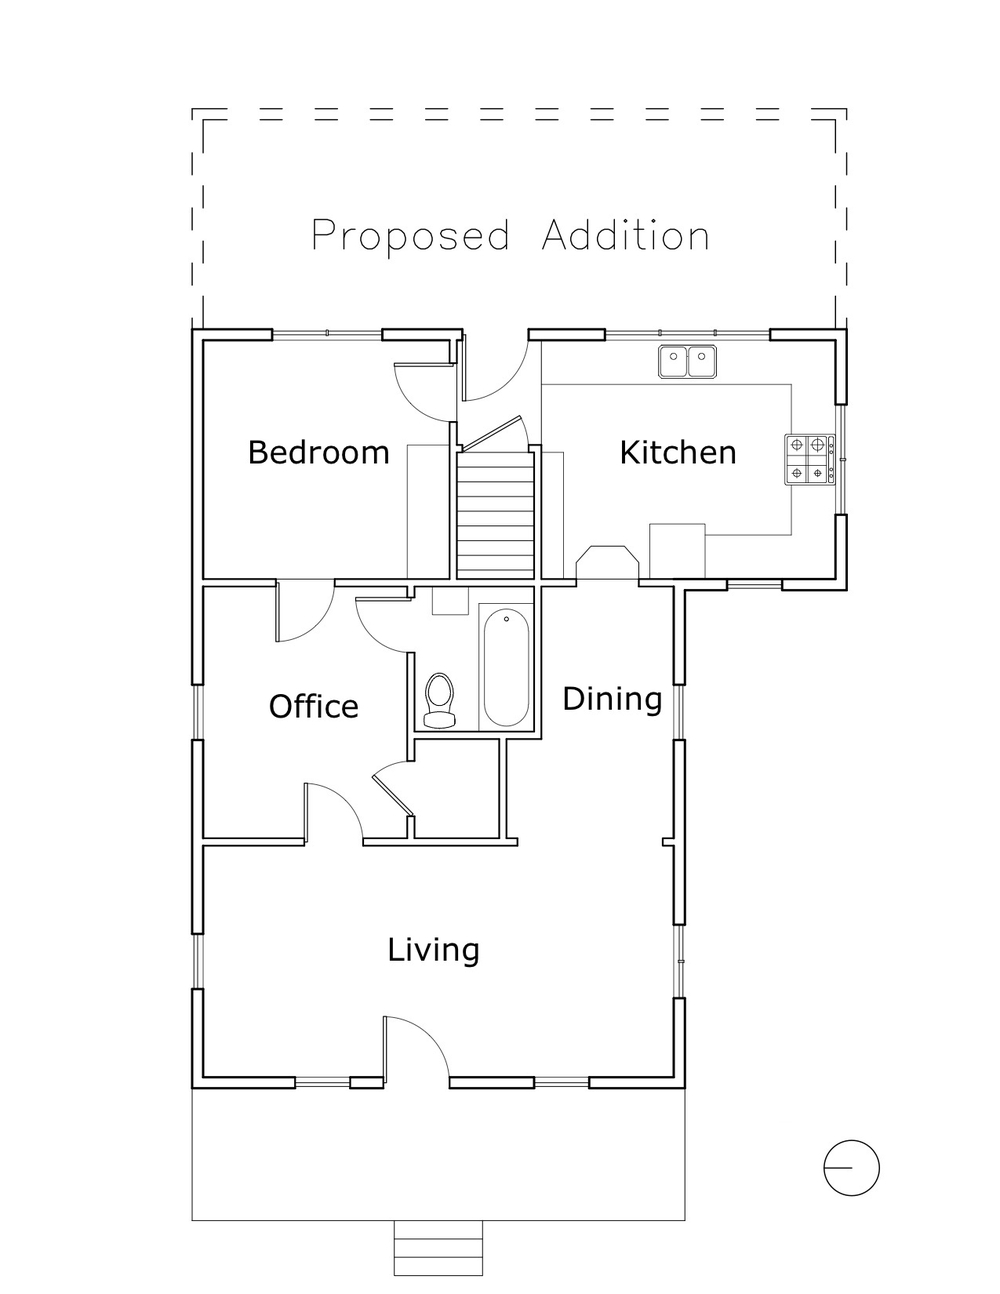 215 Hardy Ave - Existing Floor Plan.jpg